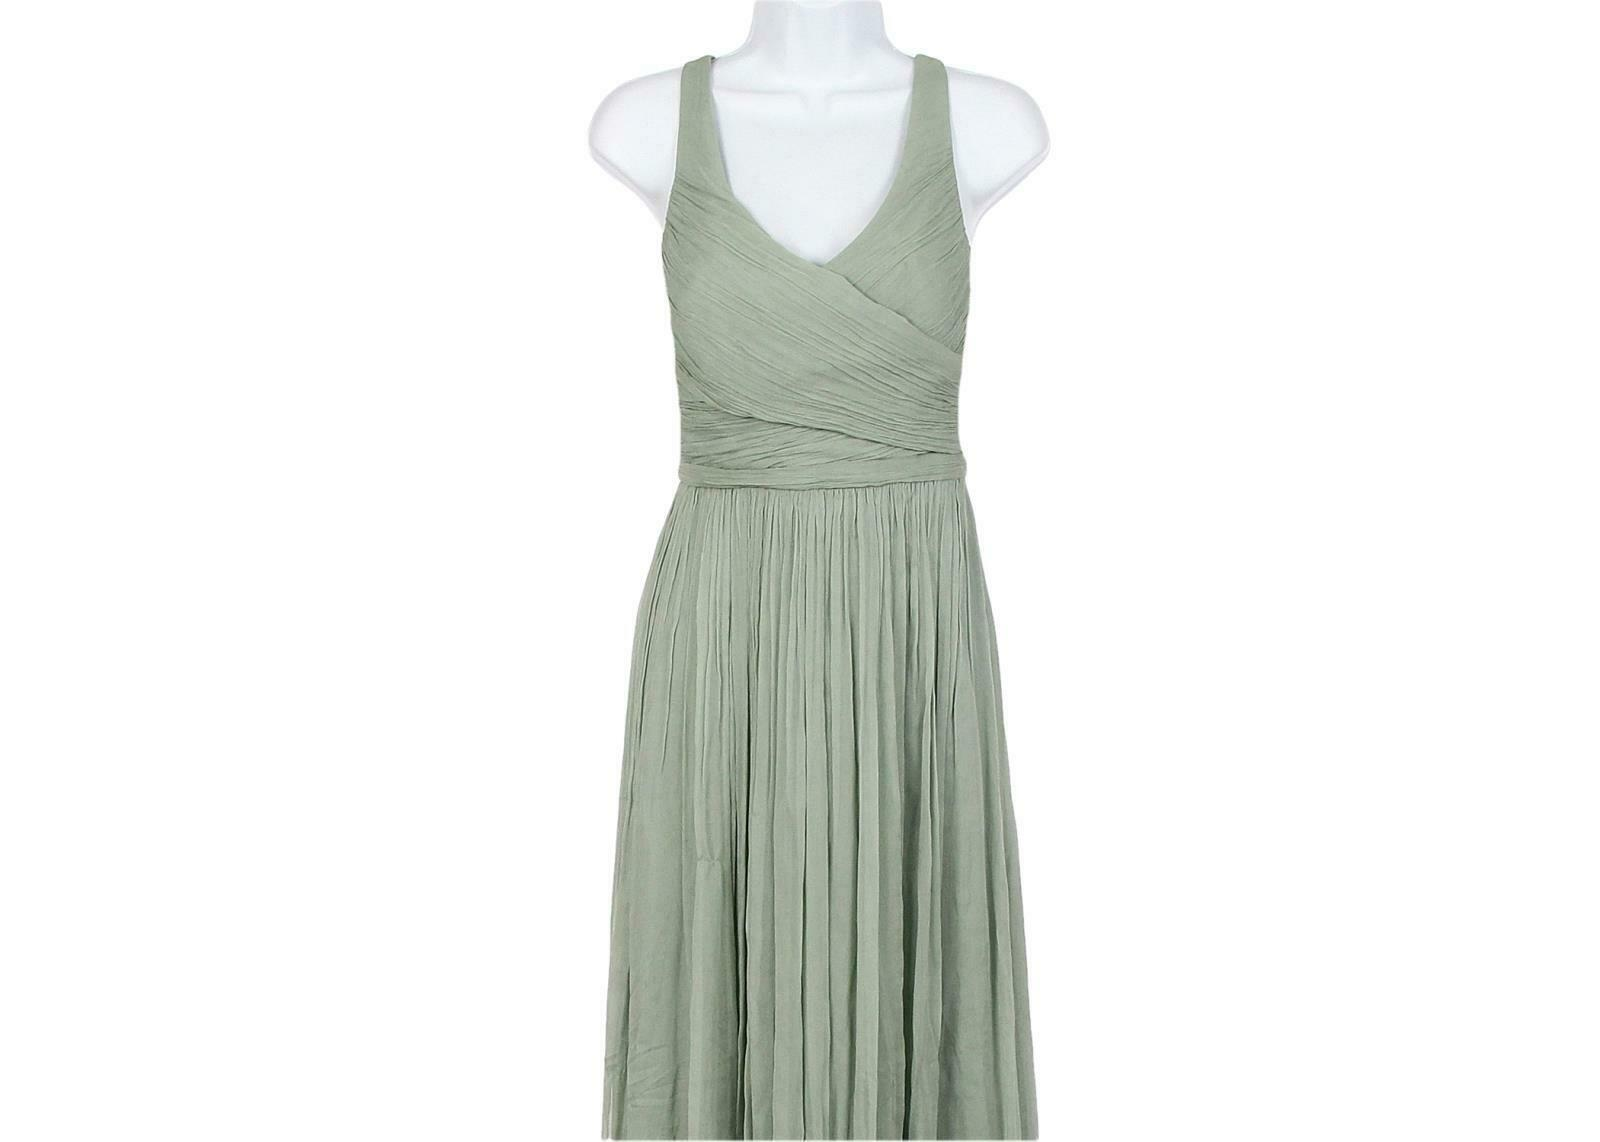 J Crew Women's Heidi Long Dress in Silk Chiffon Dusty Shale Sz 6 93075 image 2